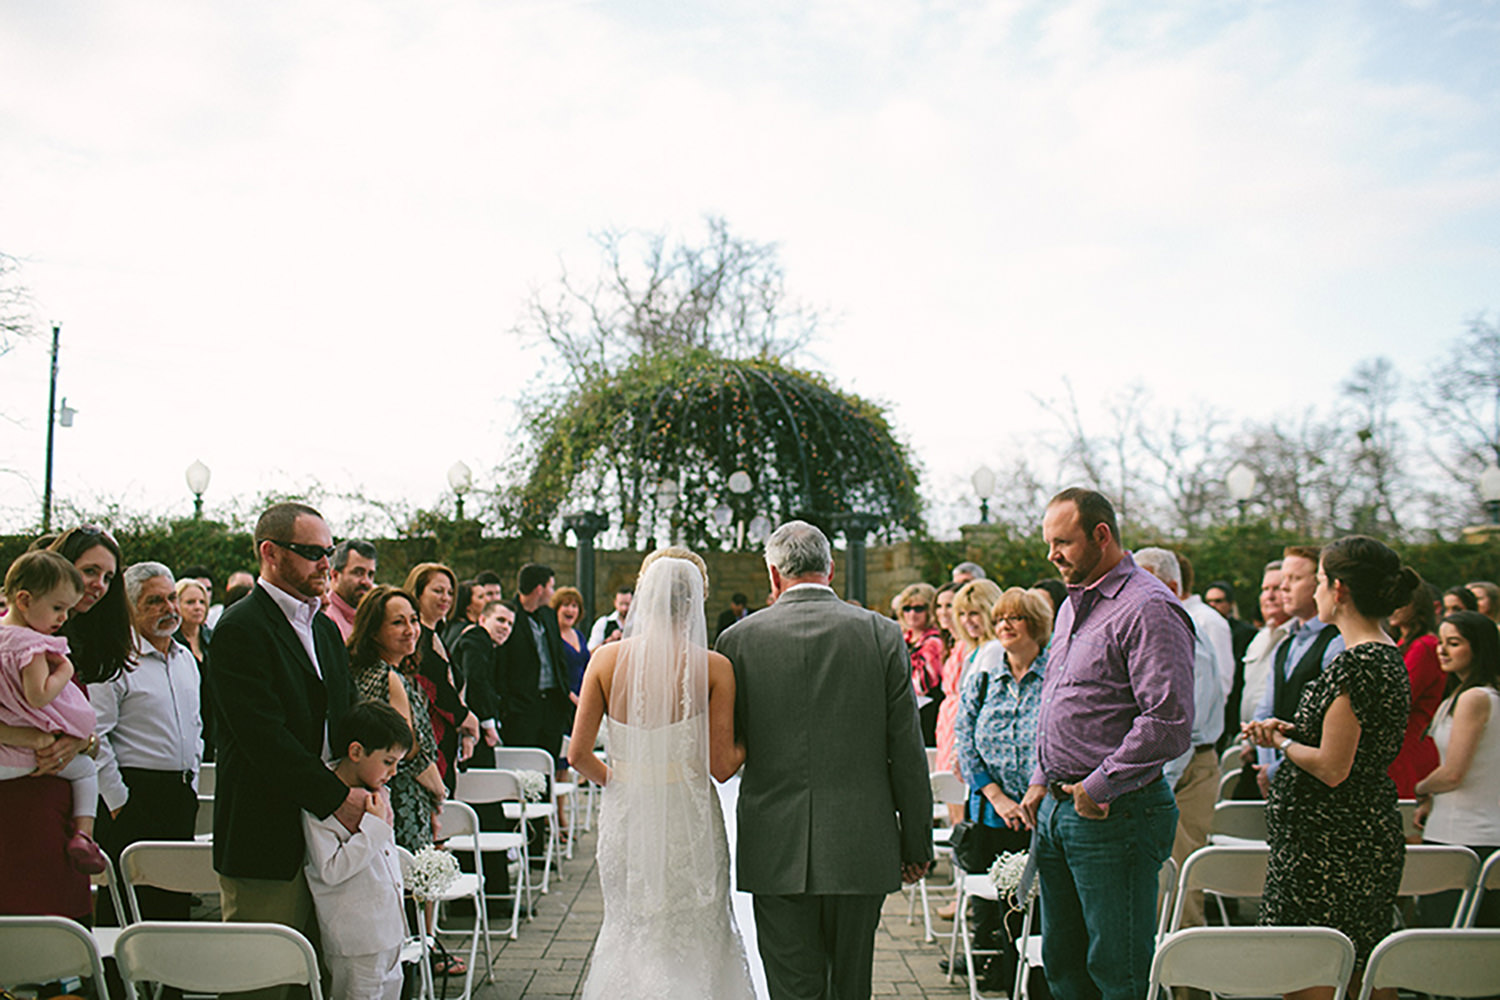 austin-wedding-photographer-20.jpg